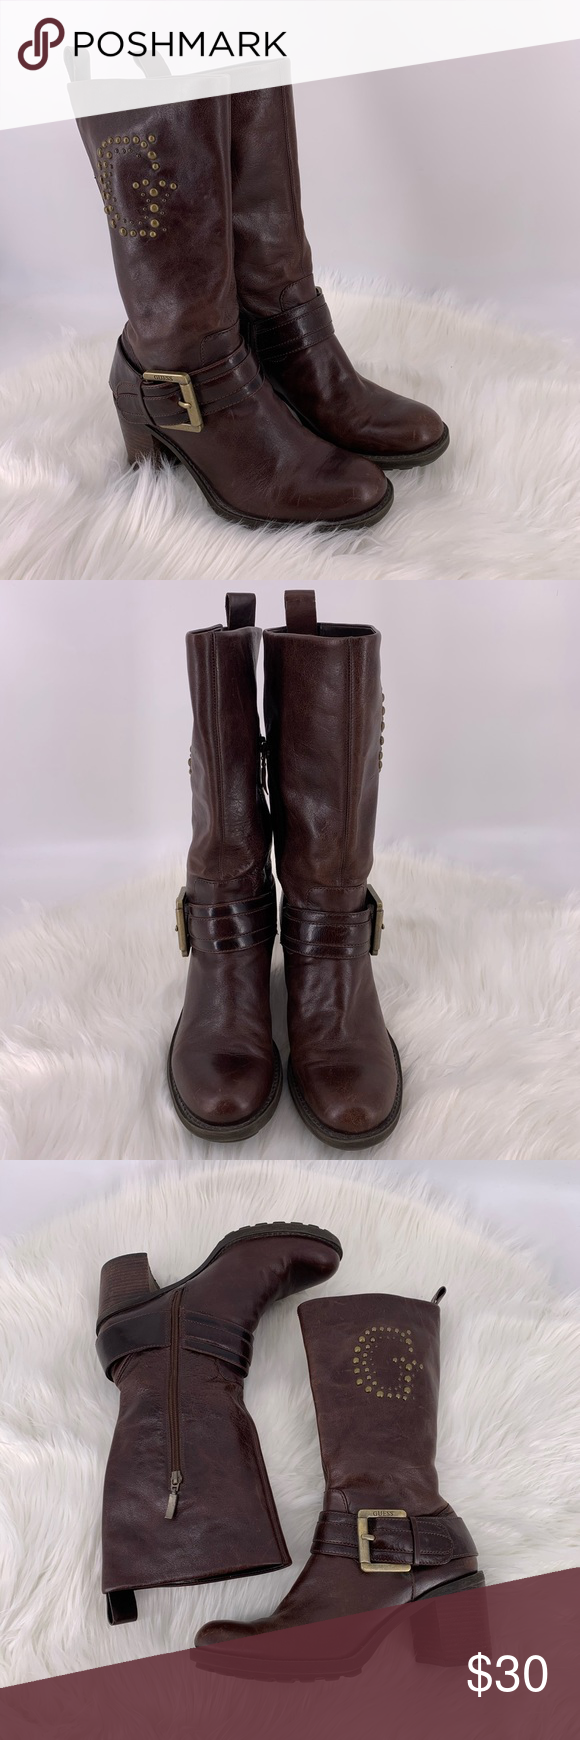 ⭐️ Brown Pull On Overreach Boots Size Small ⭐️